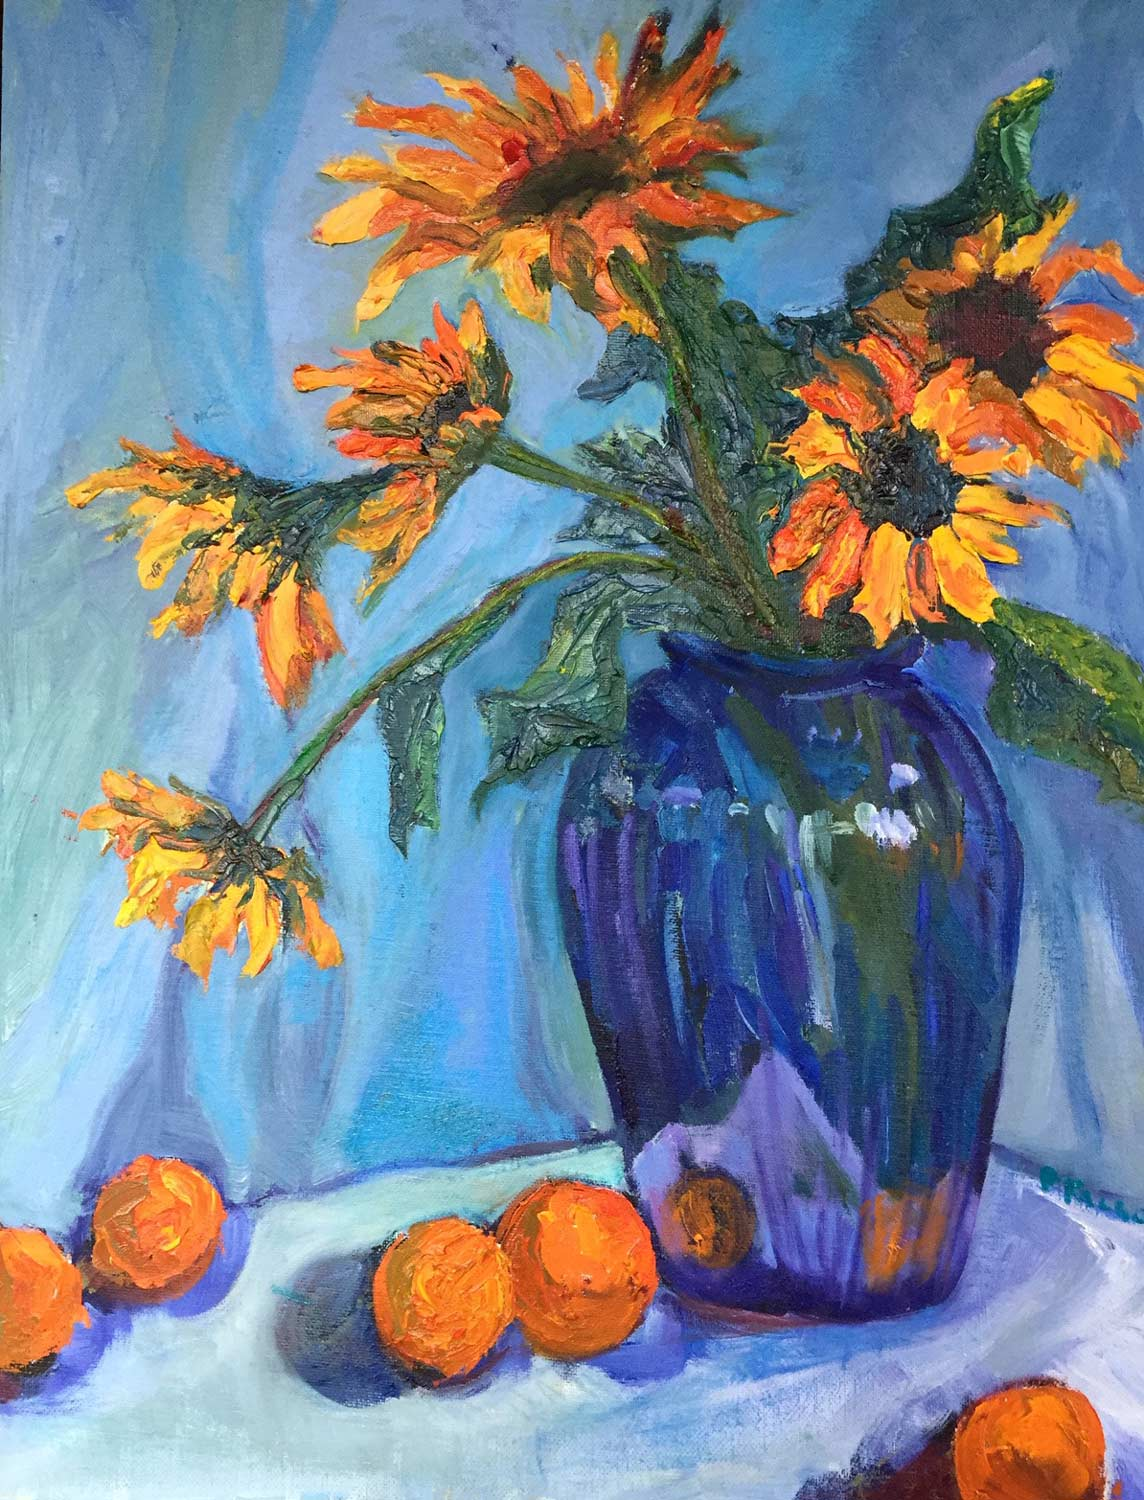 Sunflowers and Tangerines, oil